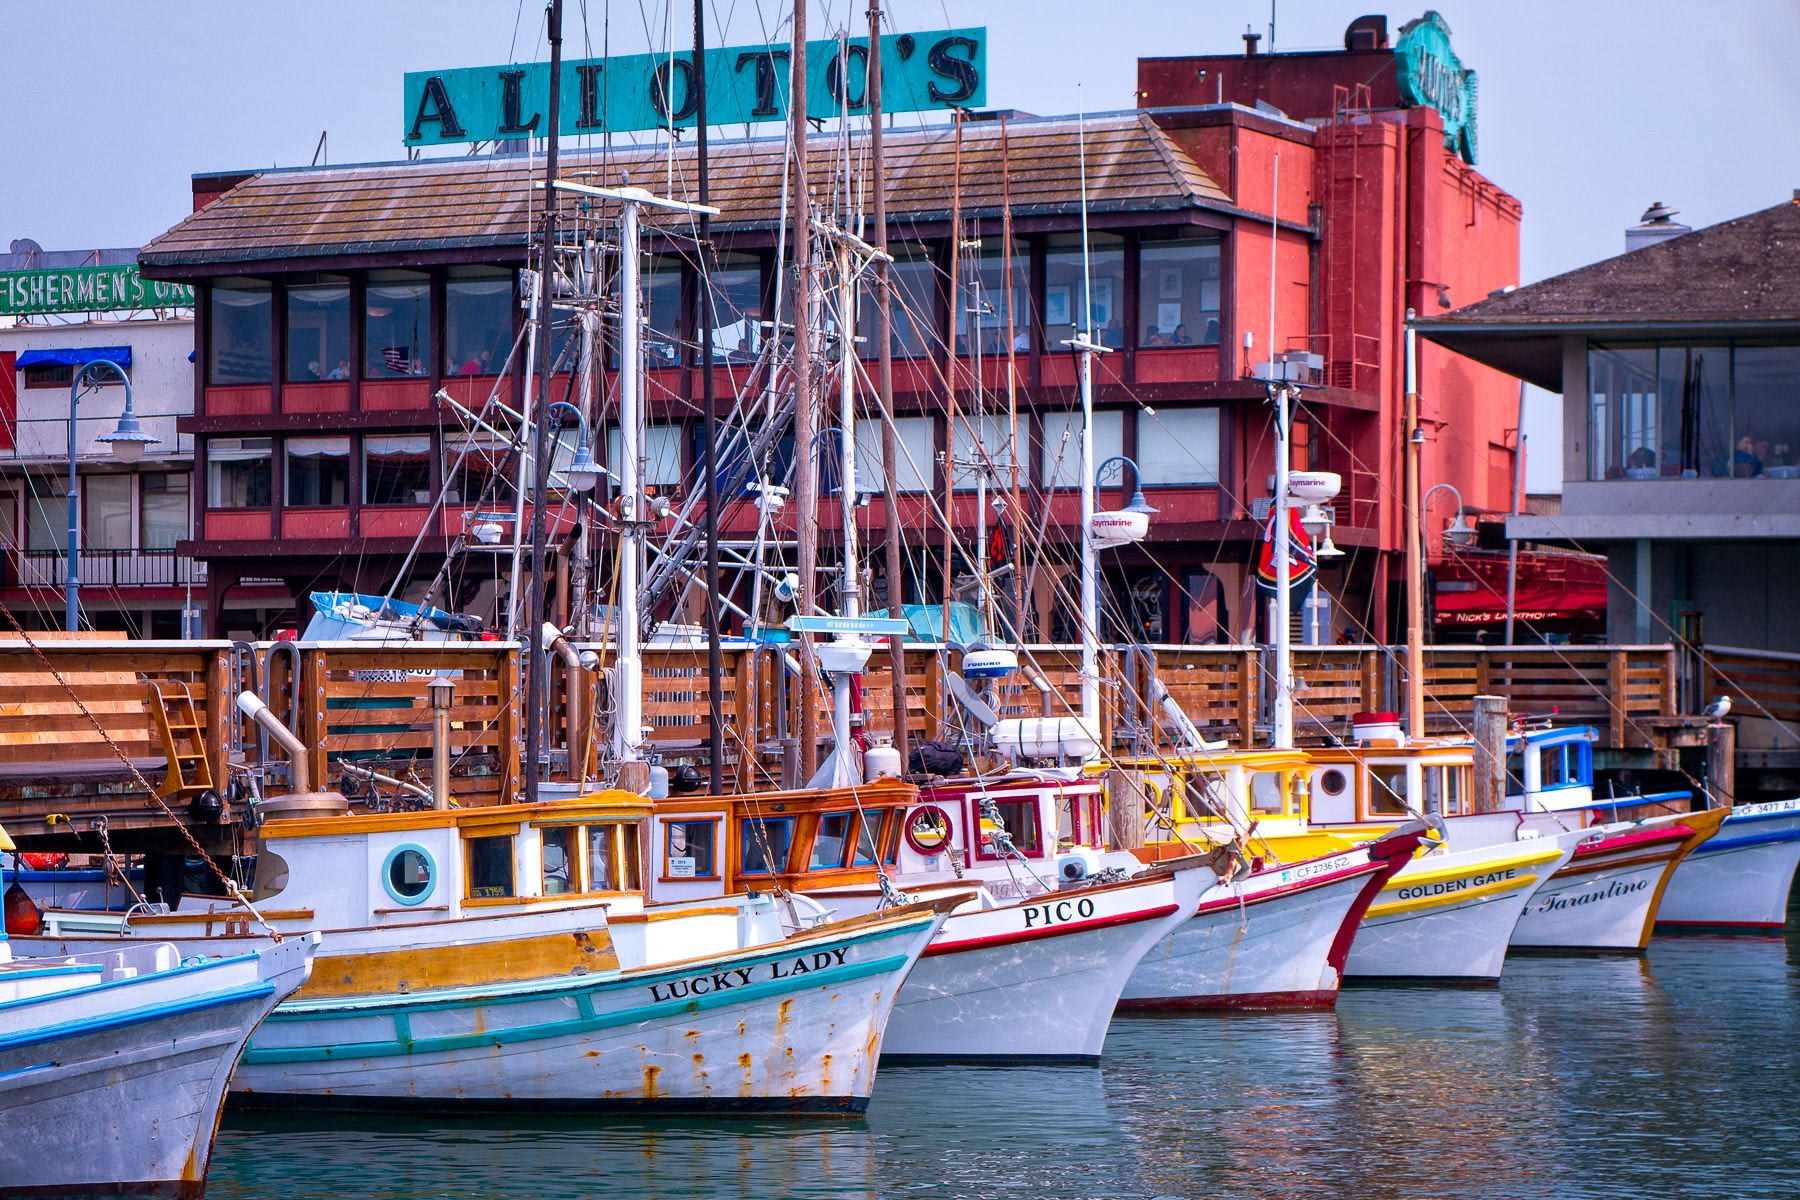 A fleet of multicolored boats docked at San Francisco's Fisherman's Wharf.